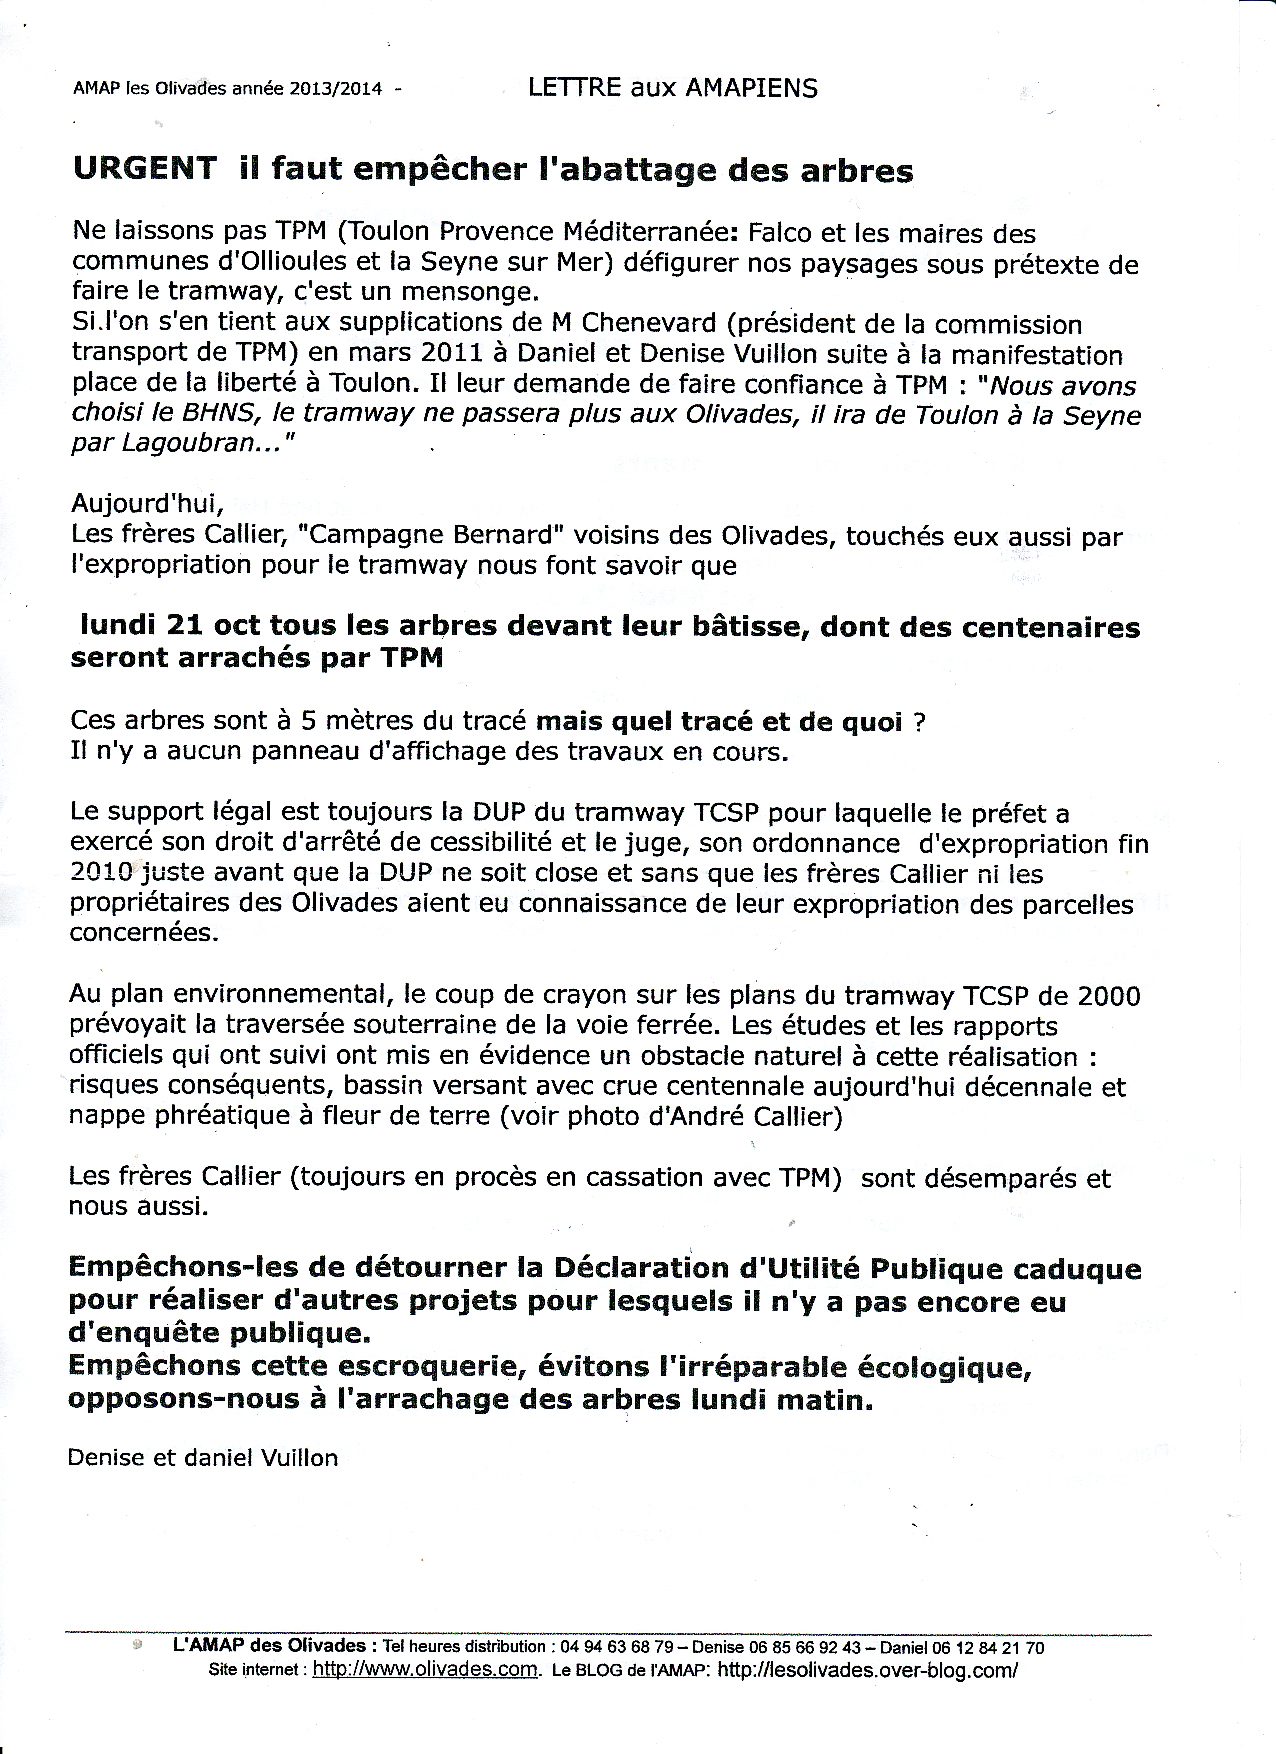 http://file23.free.fr/2012-AMAP-CONTRATS/oct-2013-B.jpg